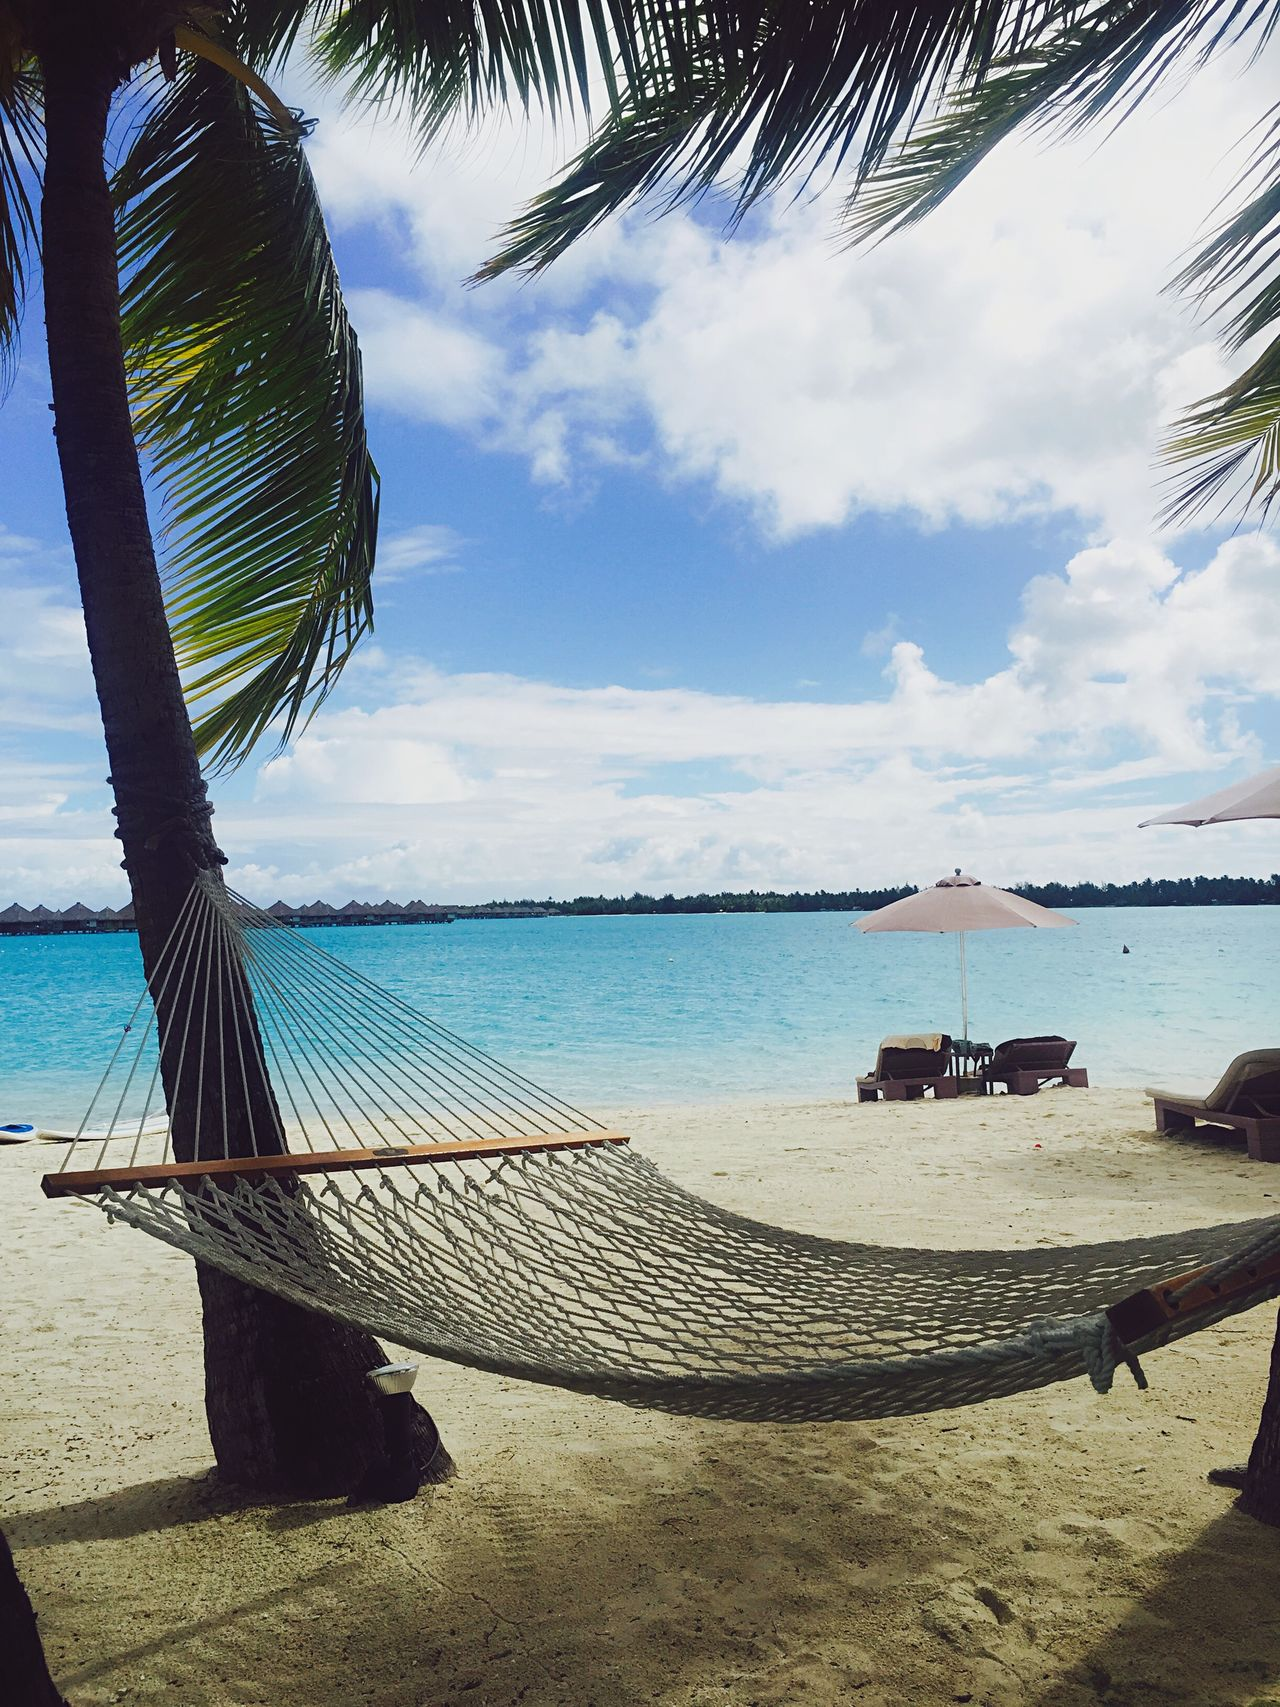 Paradise by the hammock Paradise Beach Hammock Honeymoon Bora Bora